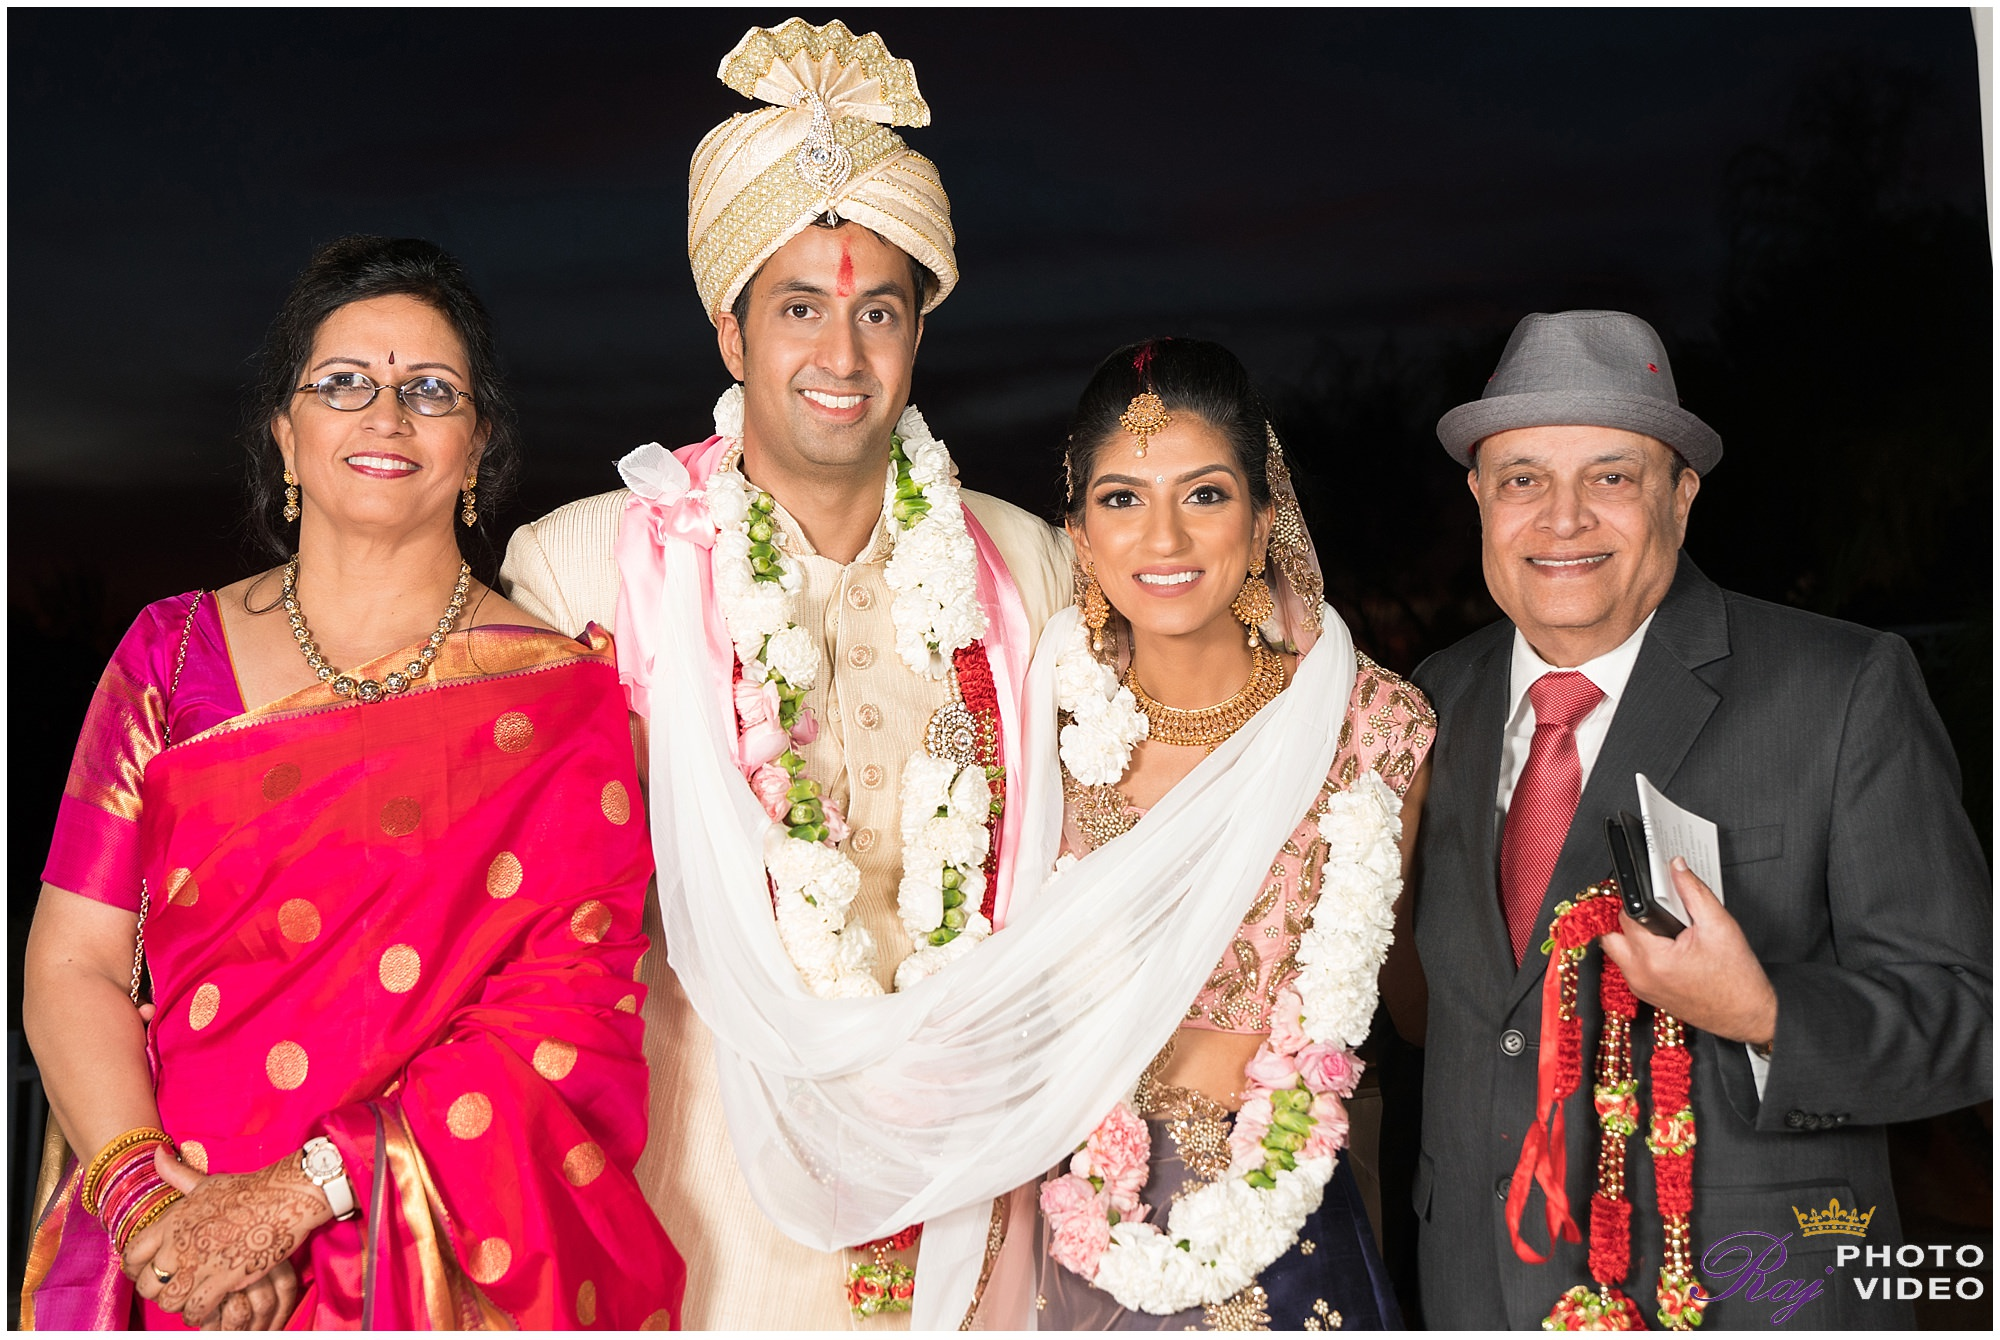 Scottsdale_Marriott_at_McDowell_Mountains_Arizona_Indian_Wedding_Sapna_Shyam-58.jpg